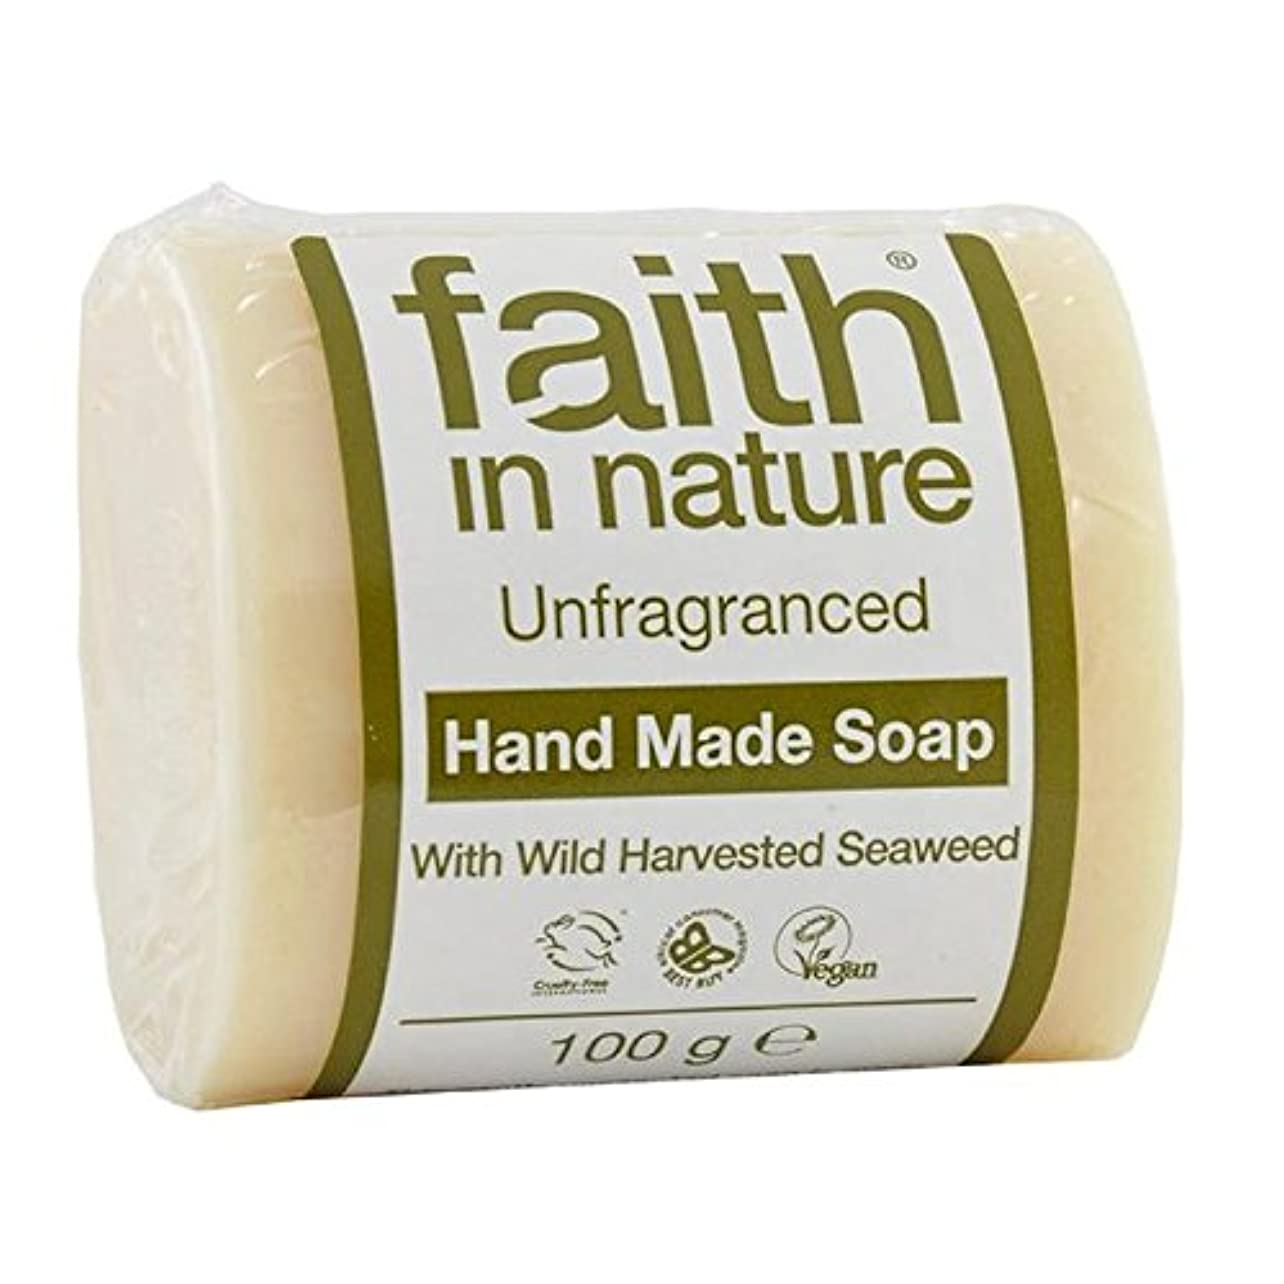 Faith in Nature Unfragranced Pure Hand Made Soap 100g (Pack of 6) - (Faith In Nature) 自然の中で信仰は純粋な手作り石鹸100グラムを無香料...